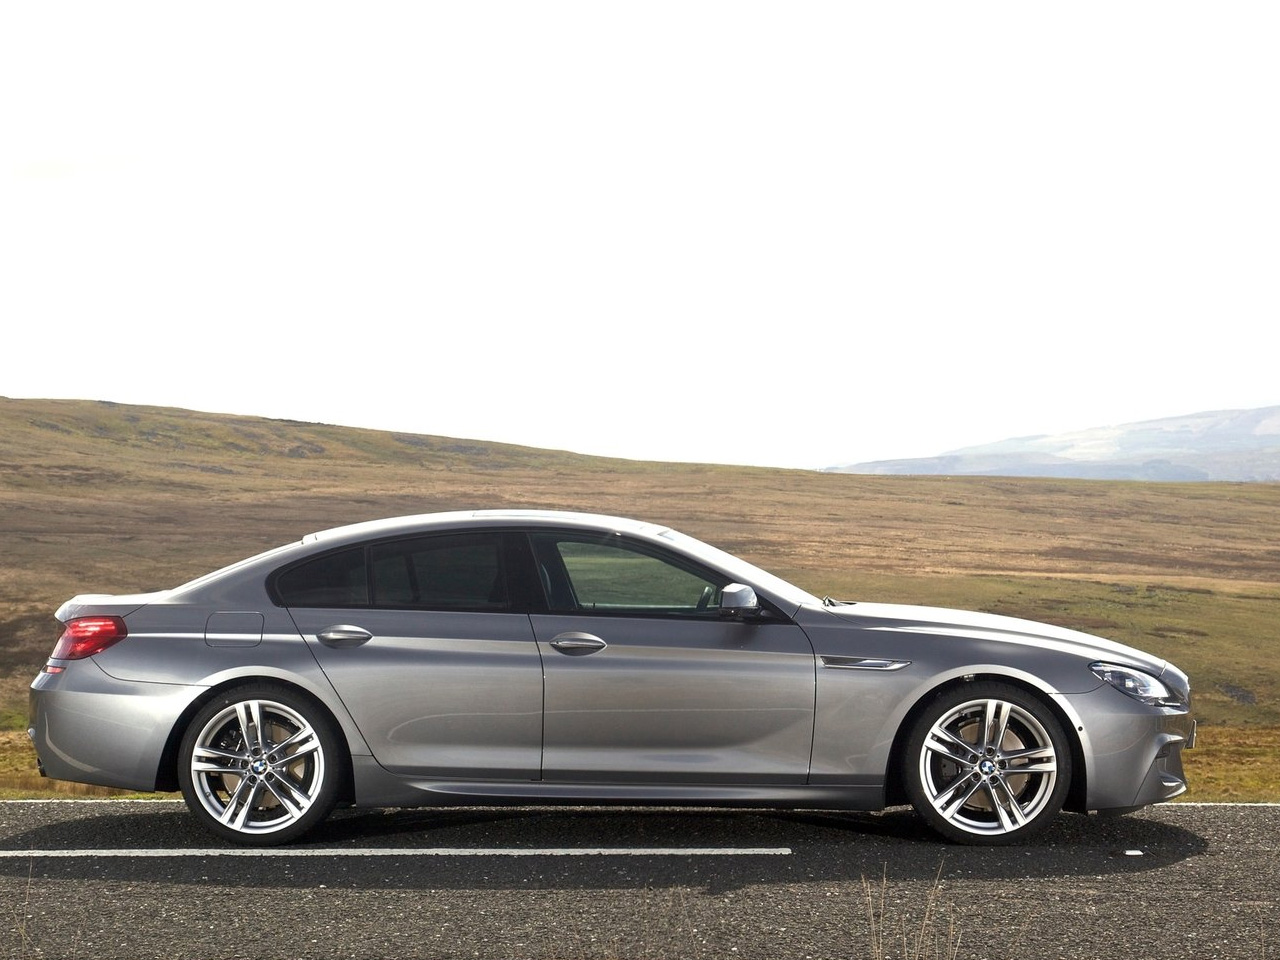 2013 bmw 6 series gran coupe - information and photos - momentcar